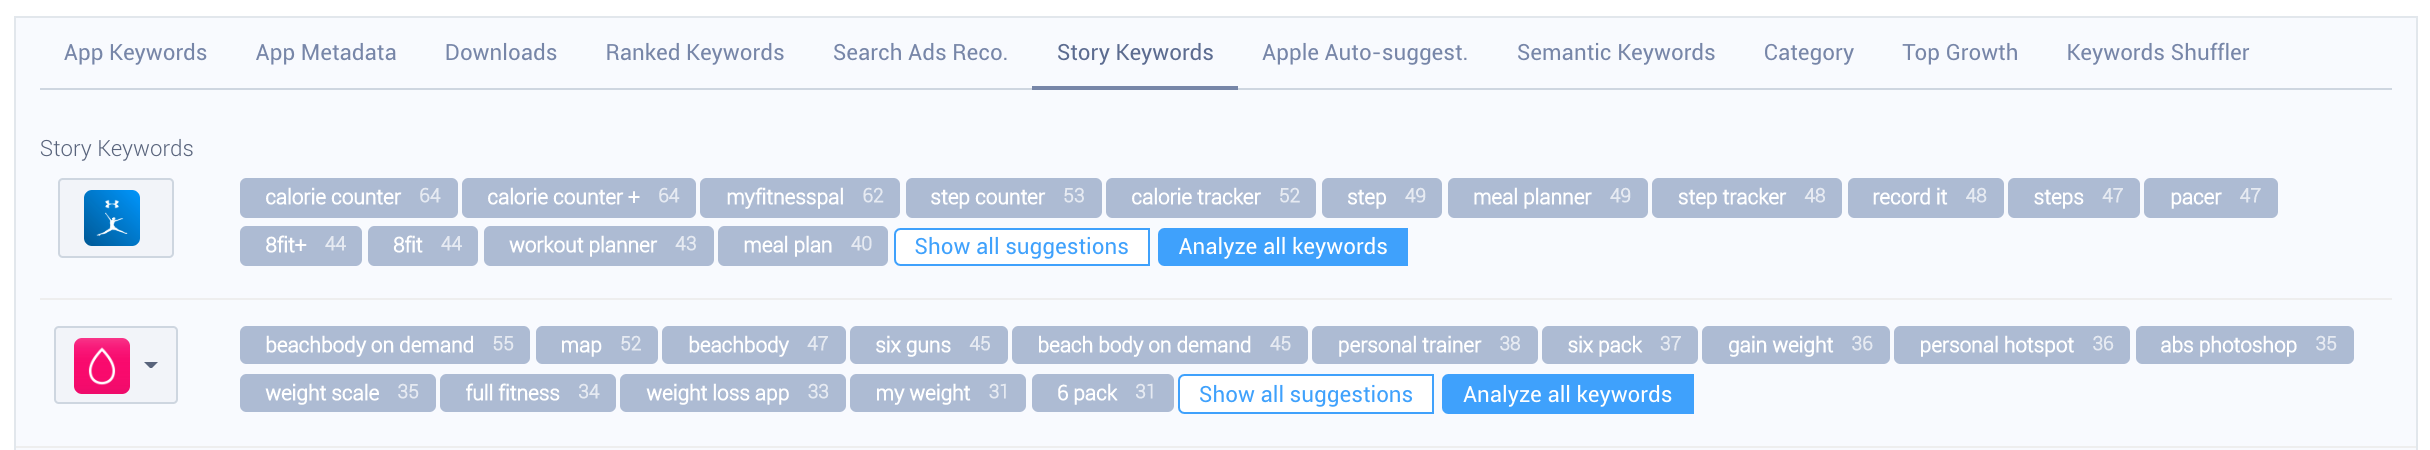 Comparing the top Story keywords of MyFitnessPal vs. Sweat: Kayla on AppTweak.